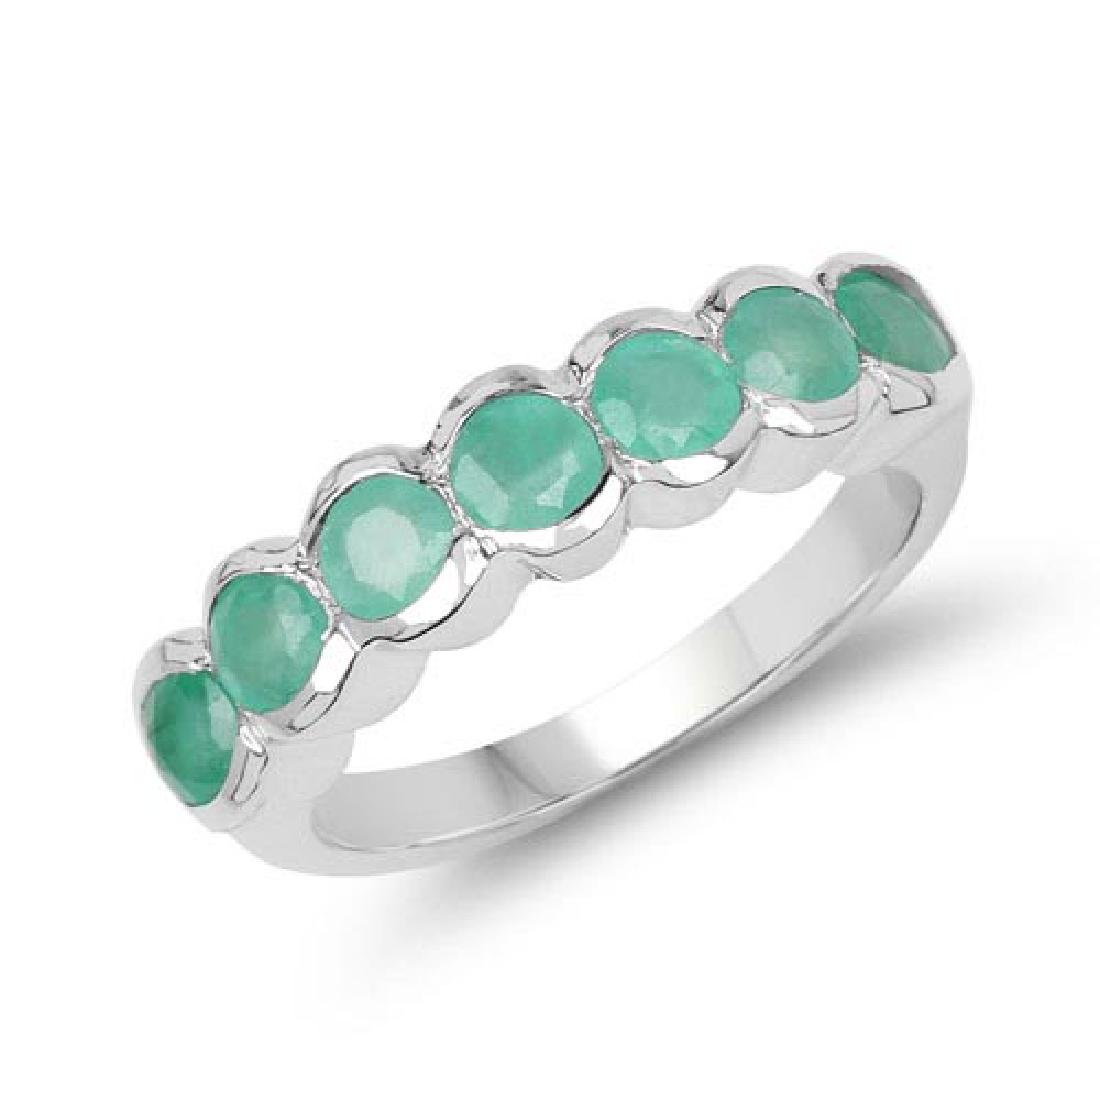 1.19 Carat Genuine Emerald .925 Sterling Silver Ring